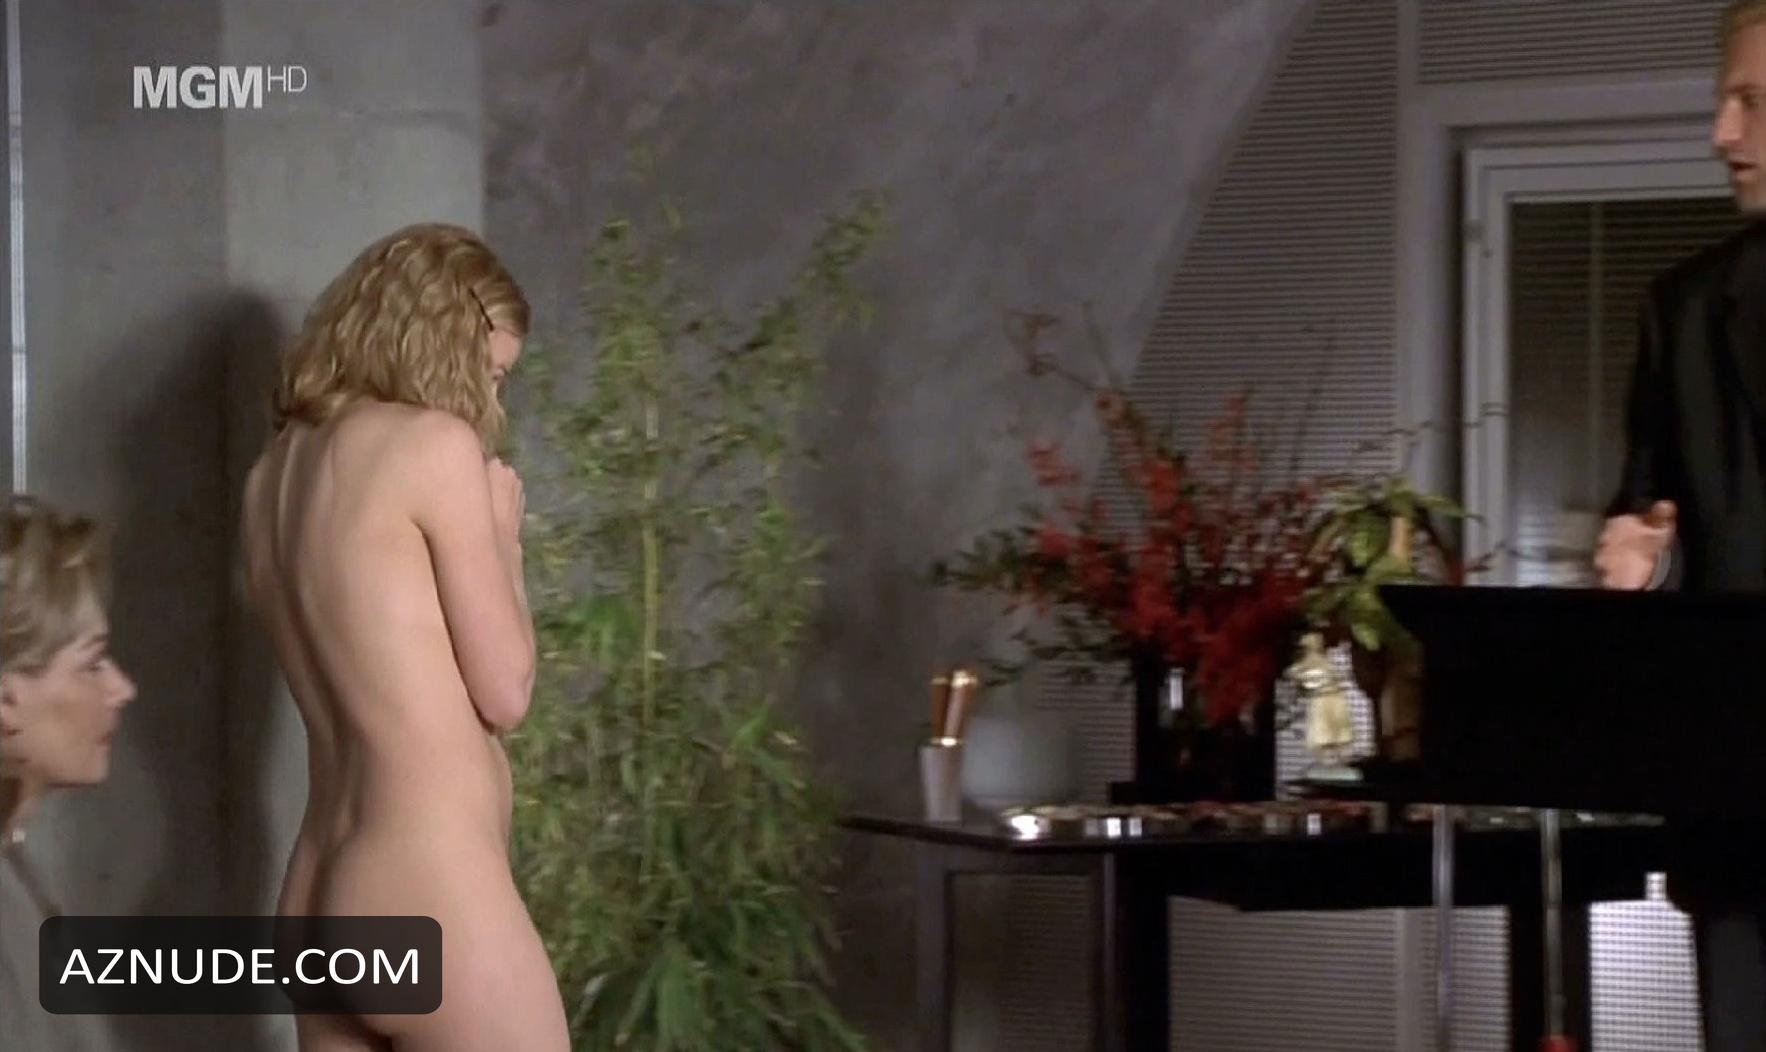 Criticising nude elizabeth shue are absolutely